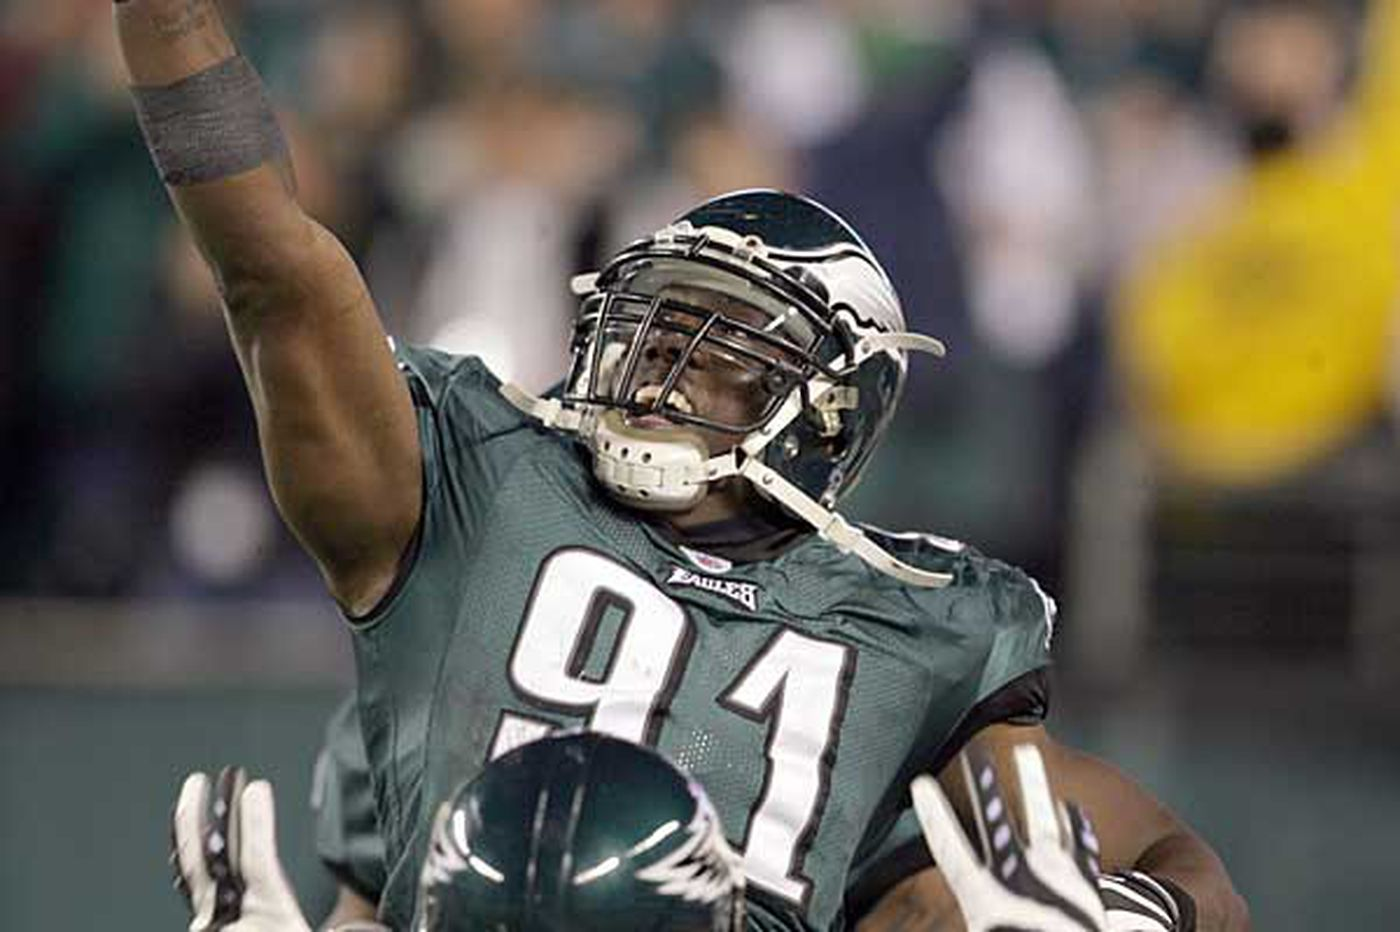 Eagles - Eagles' Clemons overcomes painful past